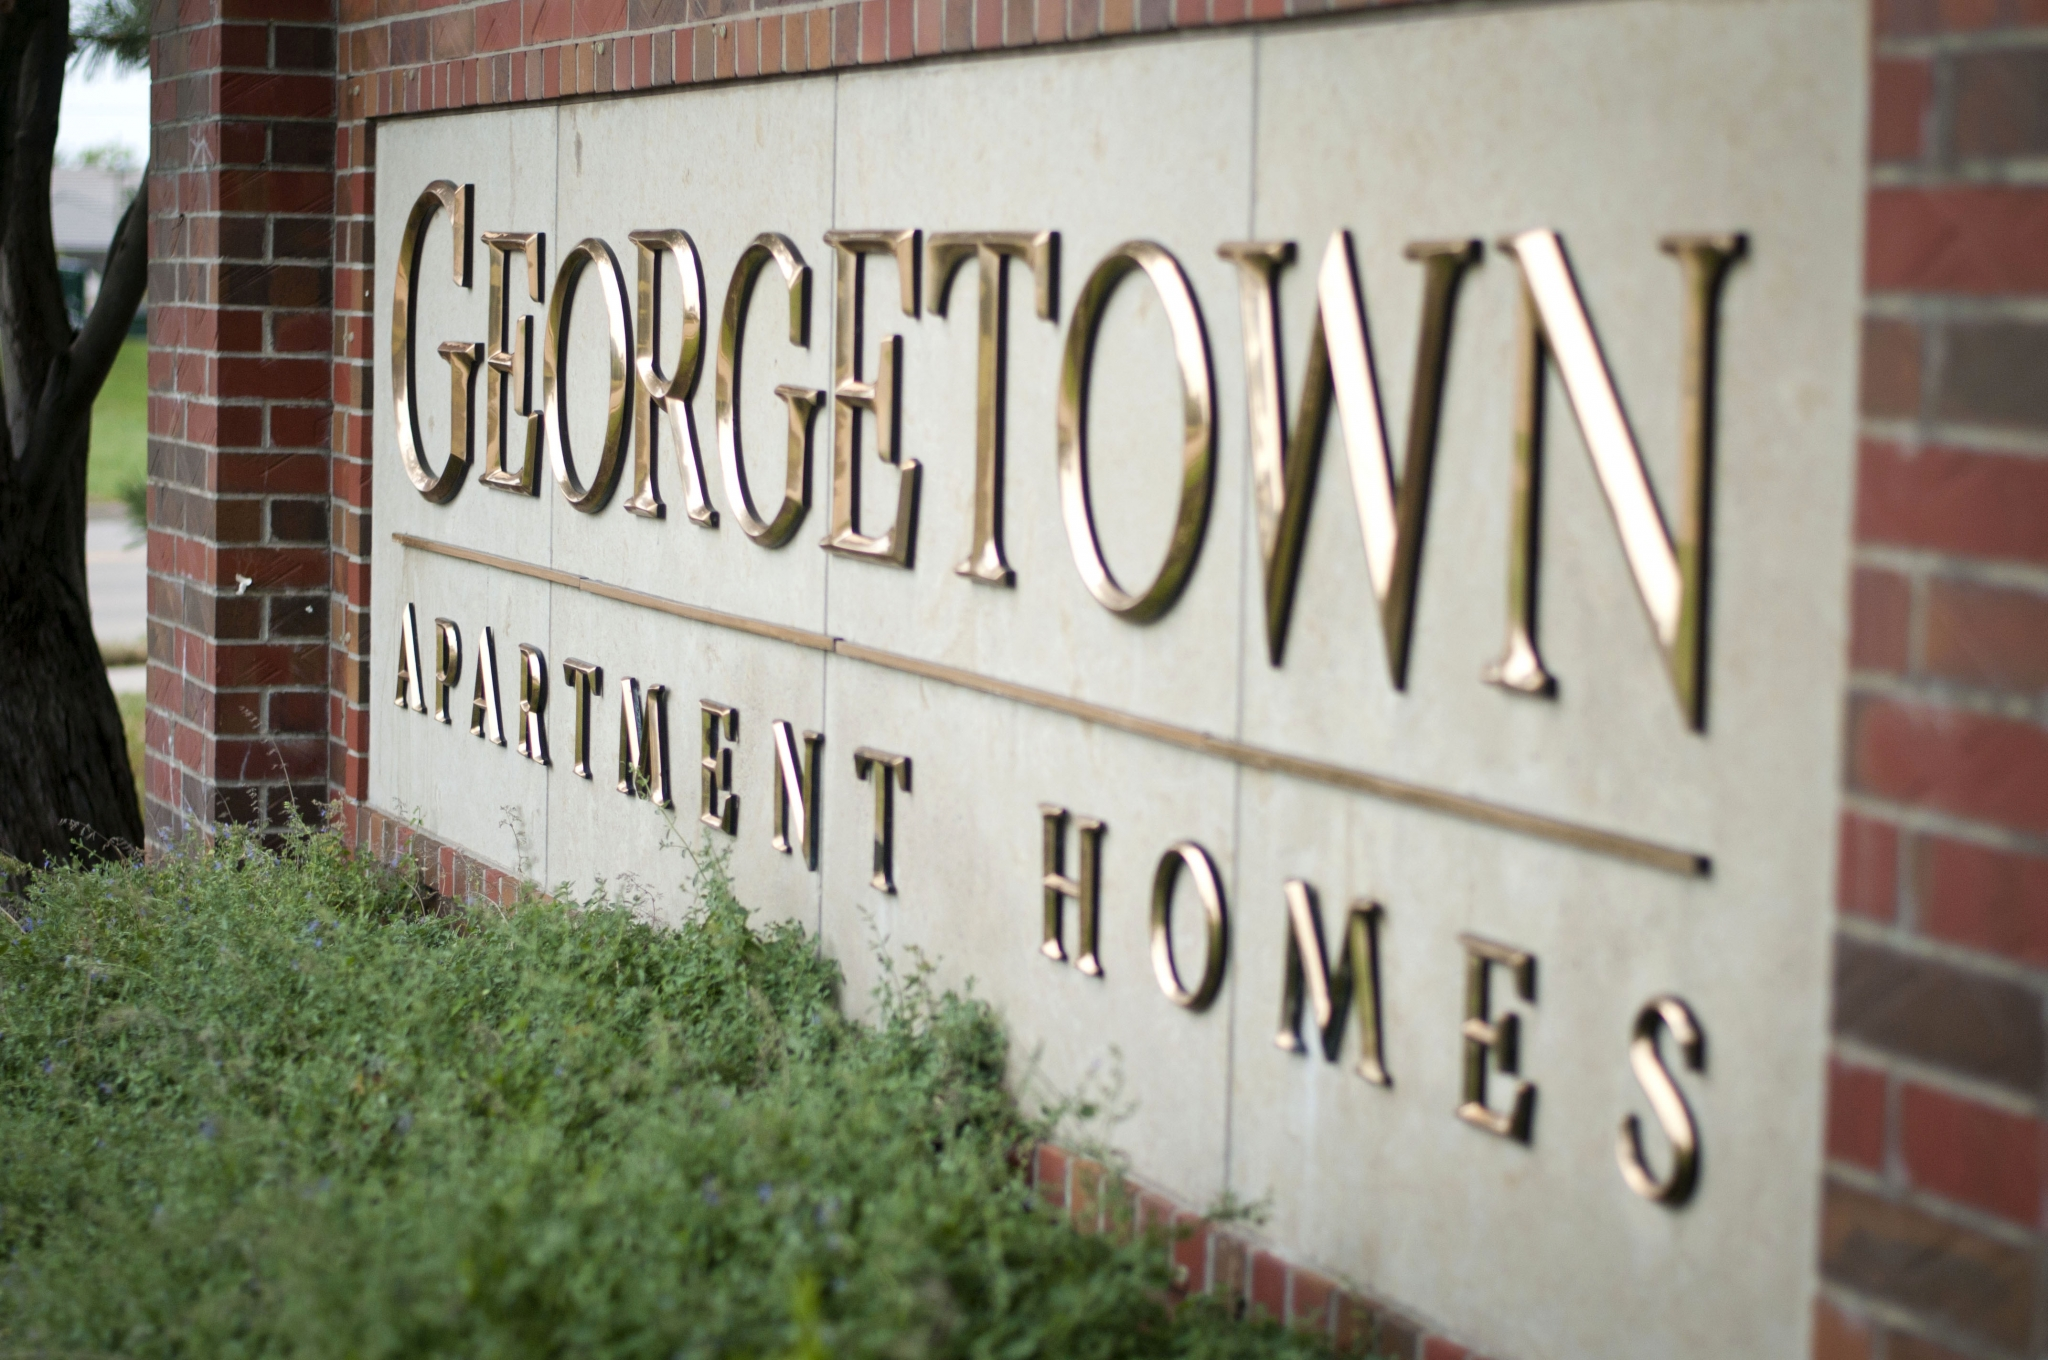 Georgetown Apartment Homes image 3